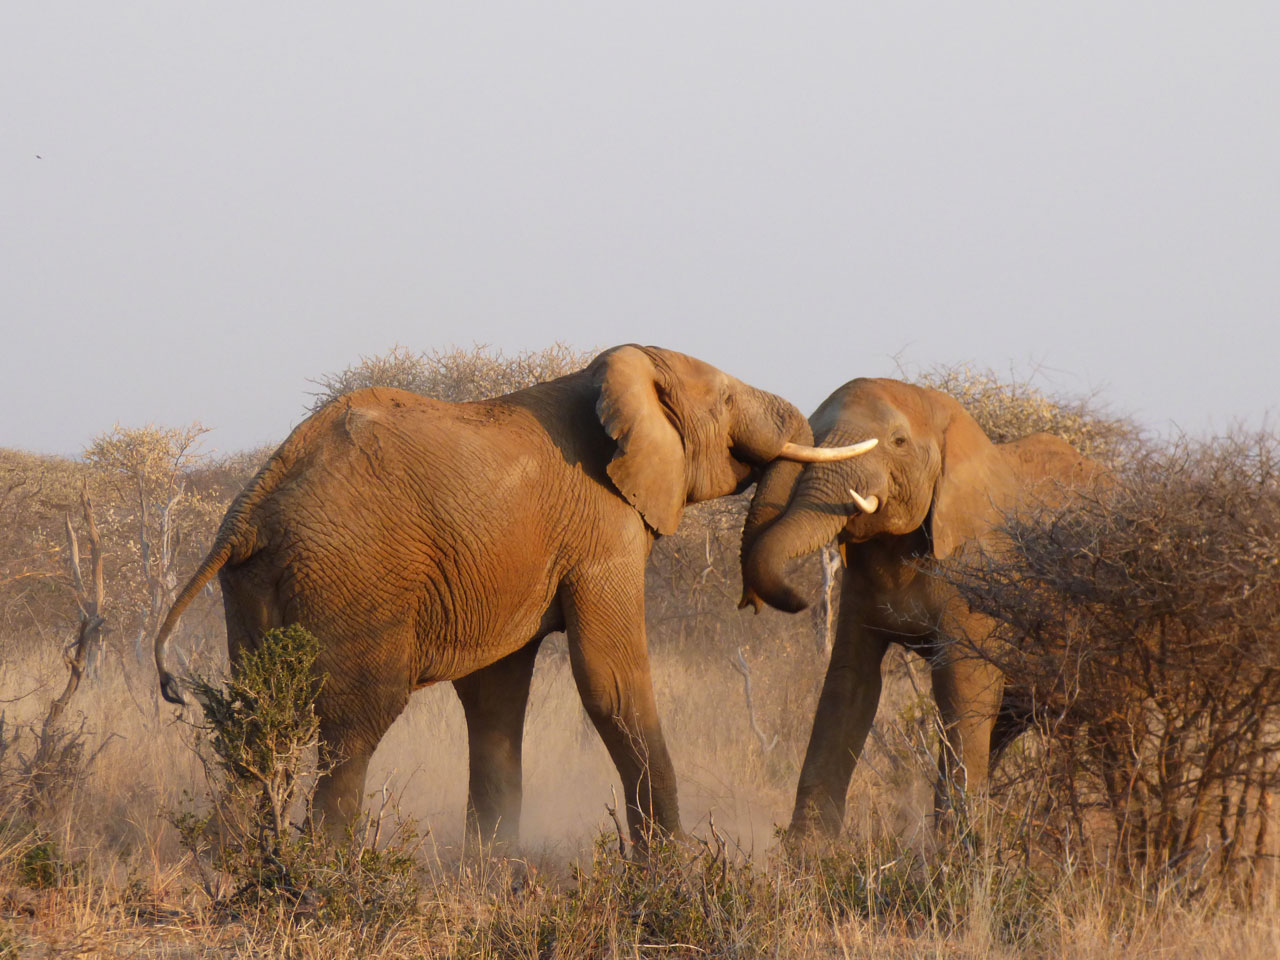 Elephants fighting in Madikwe Game Reserve, South Africa